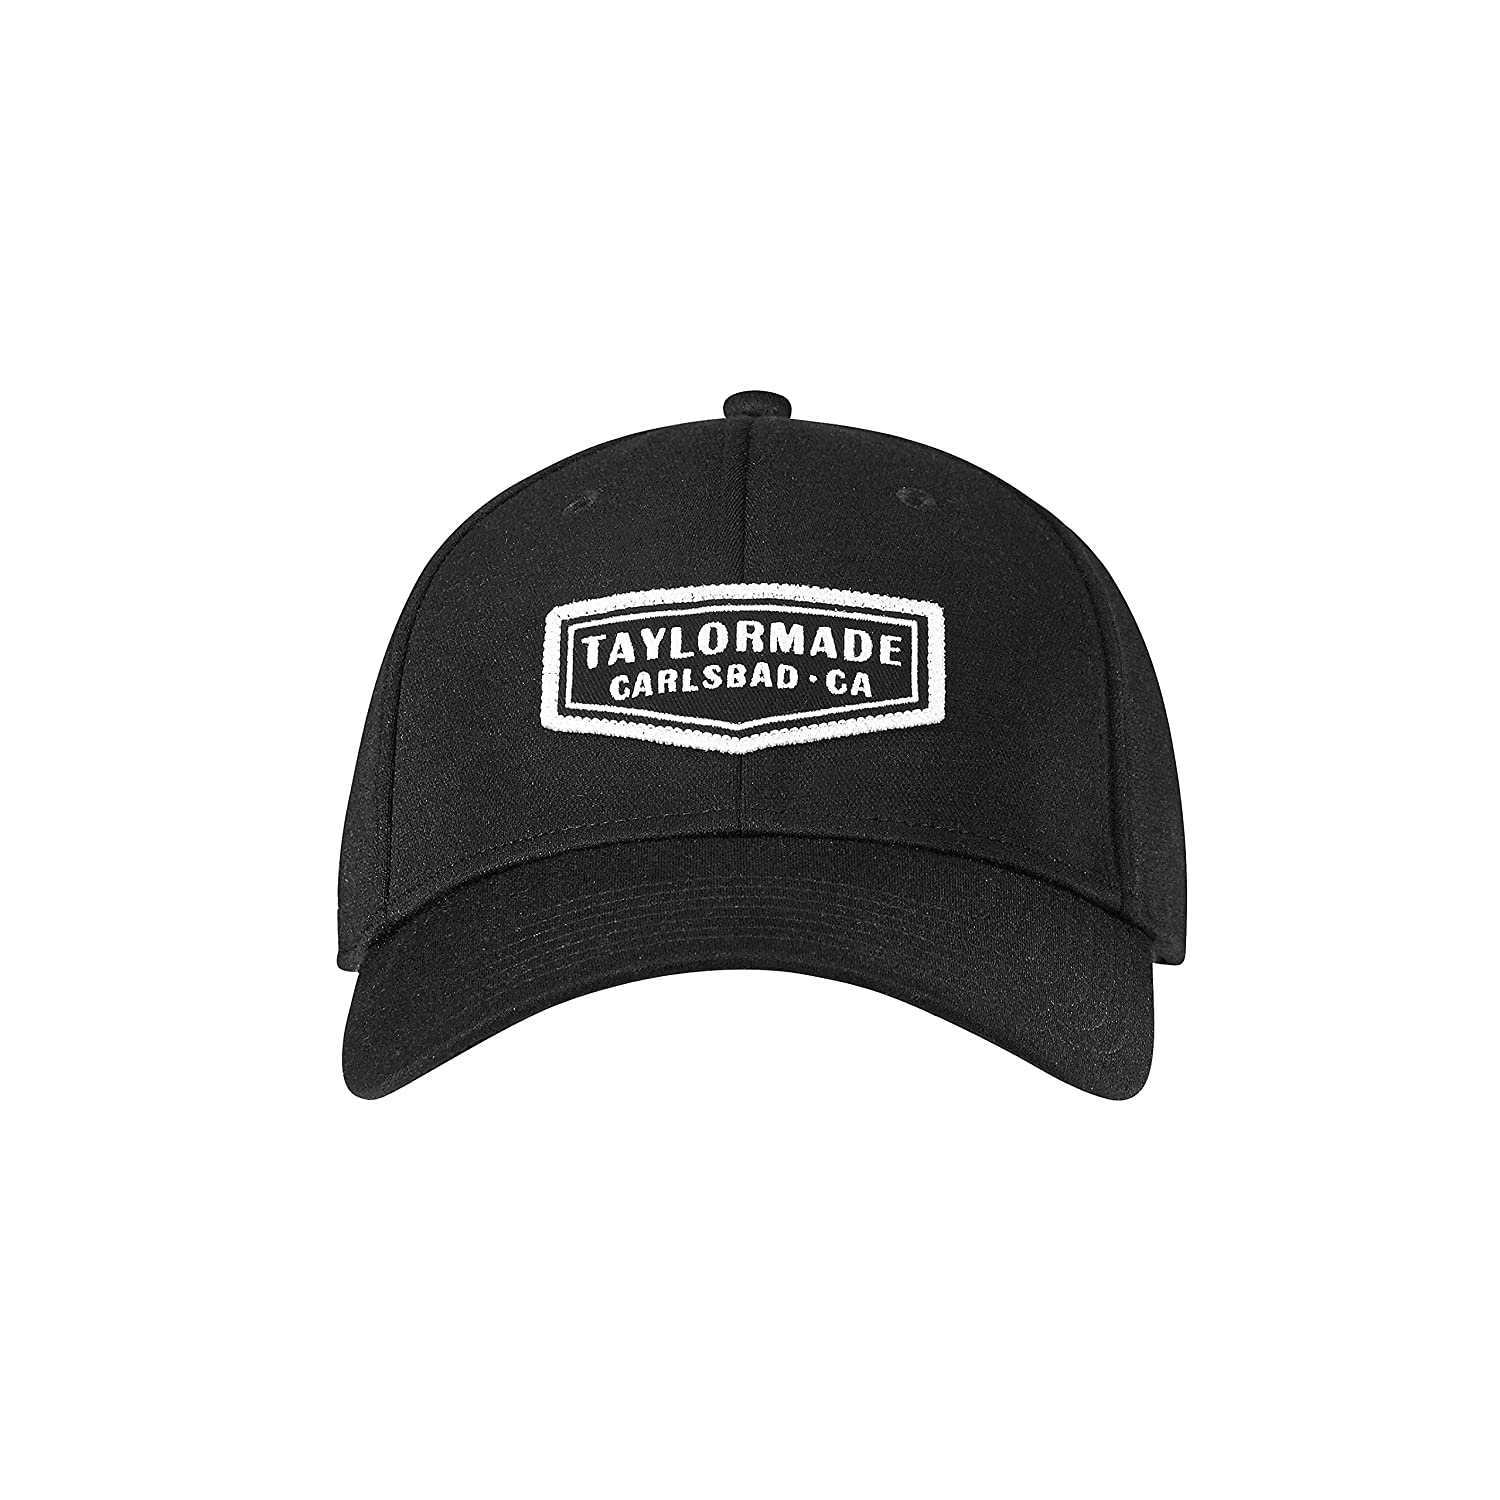 Amazon.com   TaylorMade Golf 2018 Men s Lifestyle Cage Hat   Sports    Outdoors 29f87d4c8335